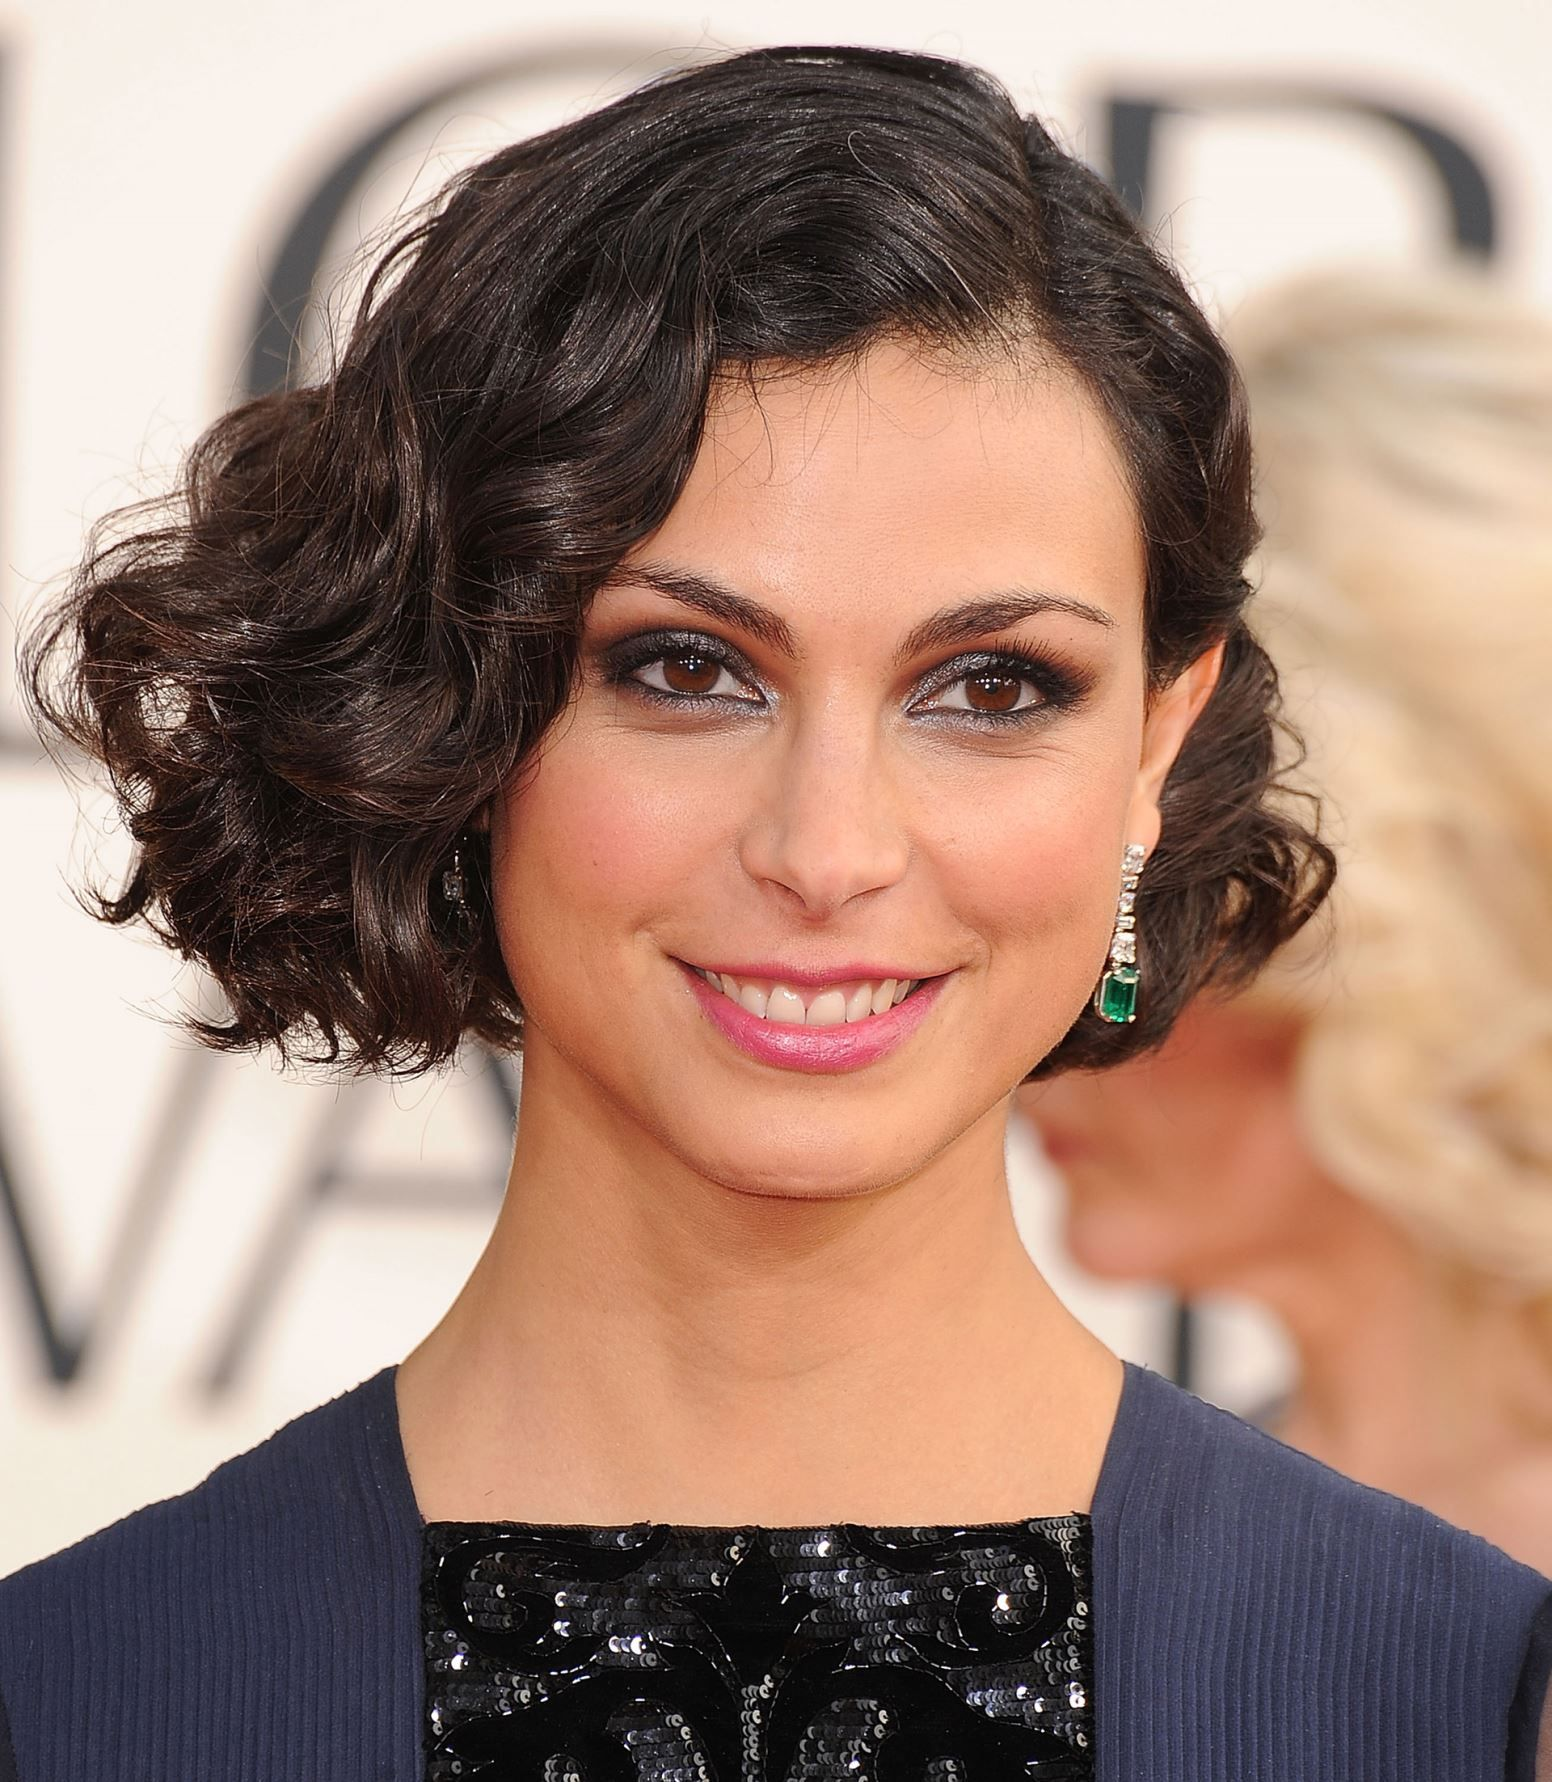 50 hot celebrity hairstyles for every hair type